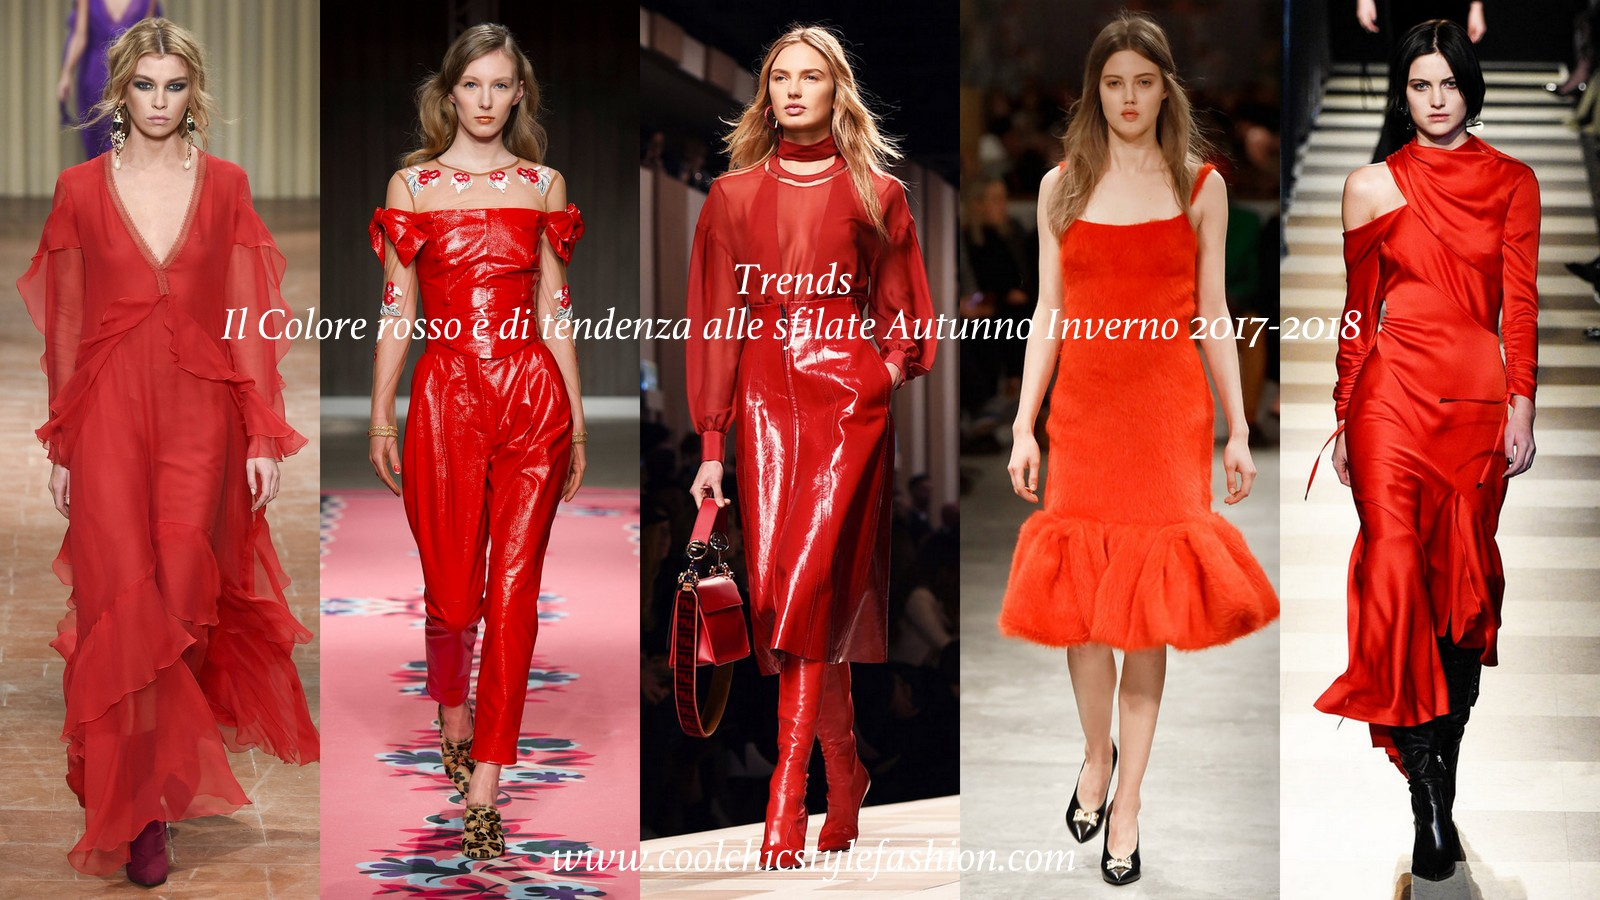 Color Trends Fall 2018 Fashion Inspiration Color Trend Red Fall Winter 2017 2018 Cool